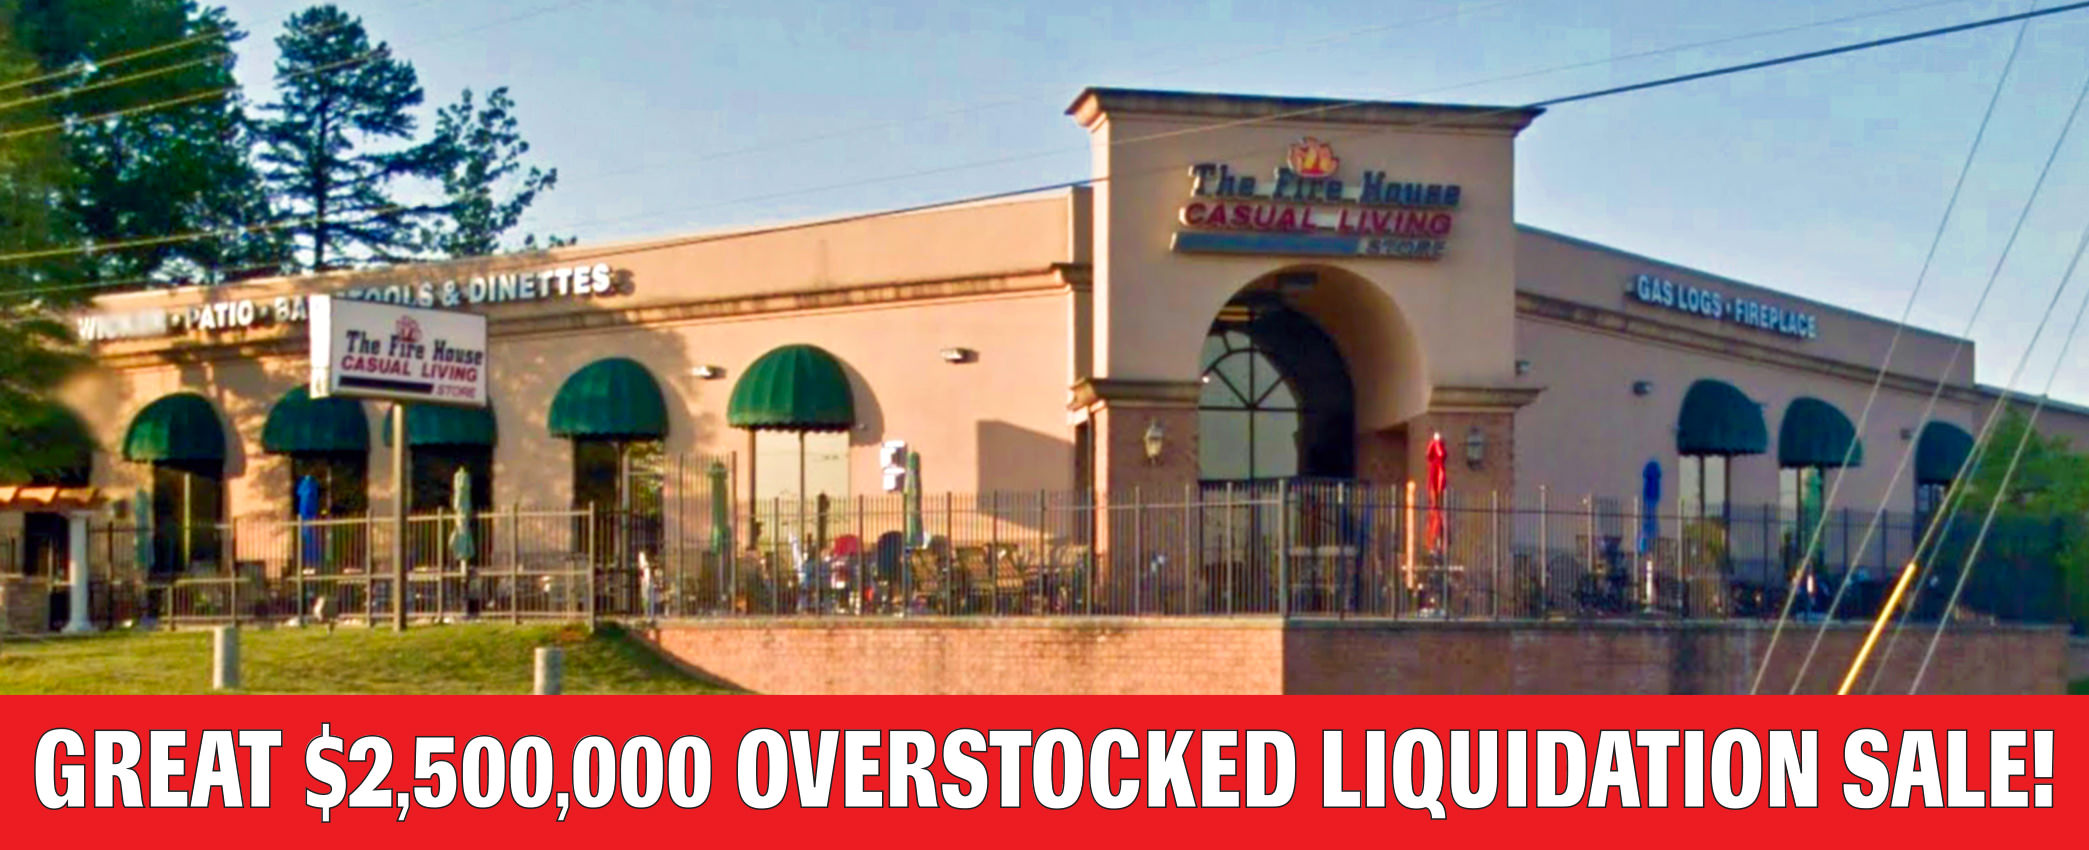 Fire House Casual Livingu0027s Great $2,500,000 Overstocked Liquidation Sale!